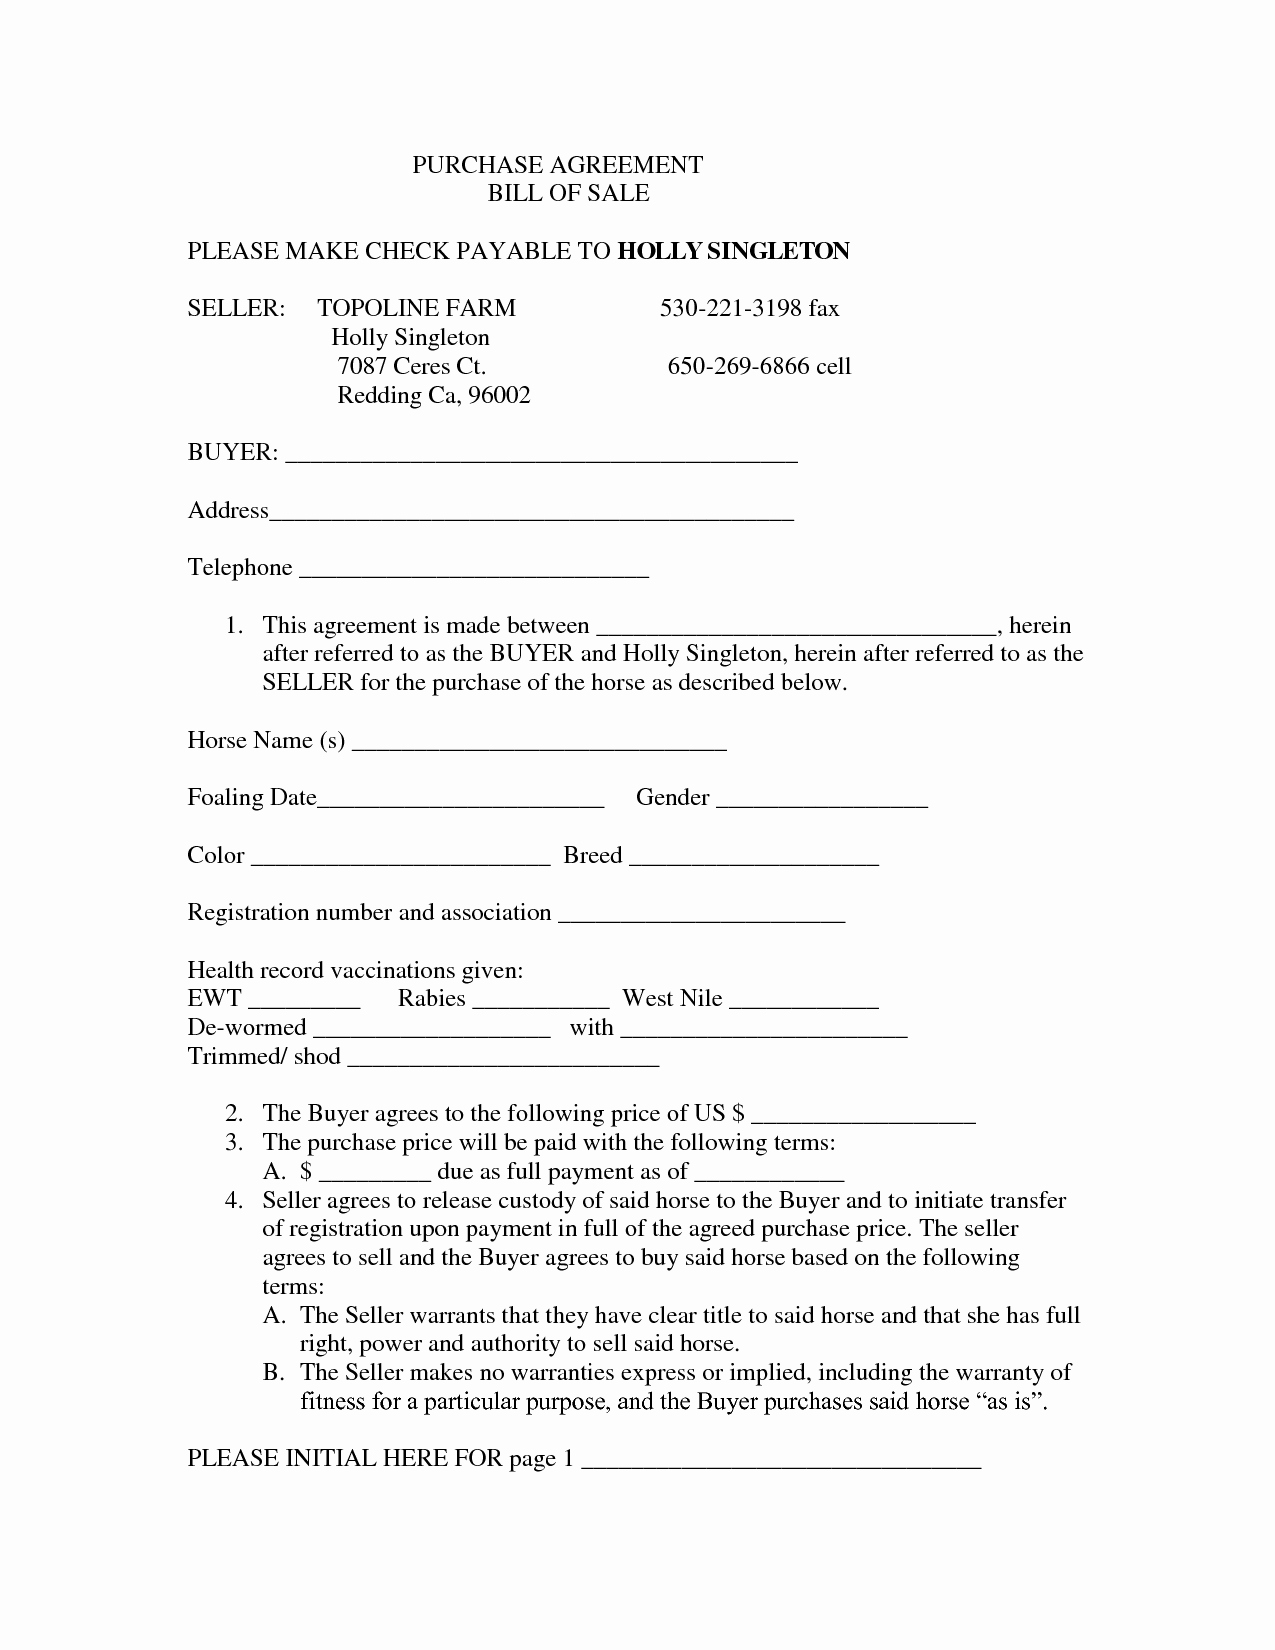 Bill Of Sale Payment Agreement Lovely 10 Best Of Equine Purchase and Sales Agreement